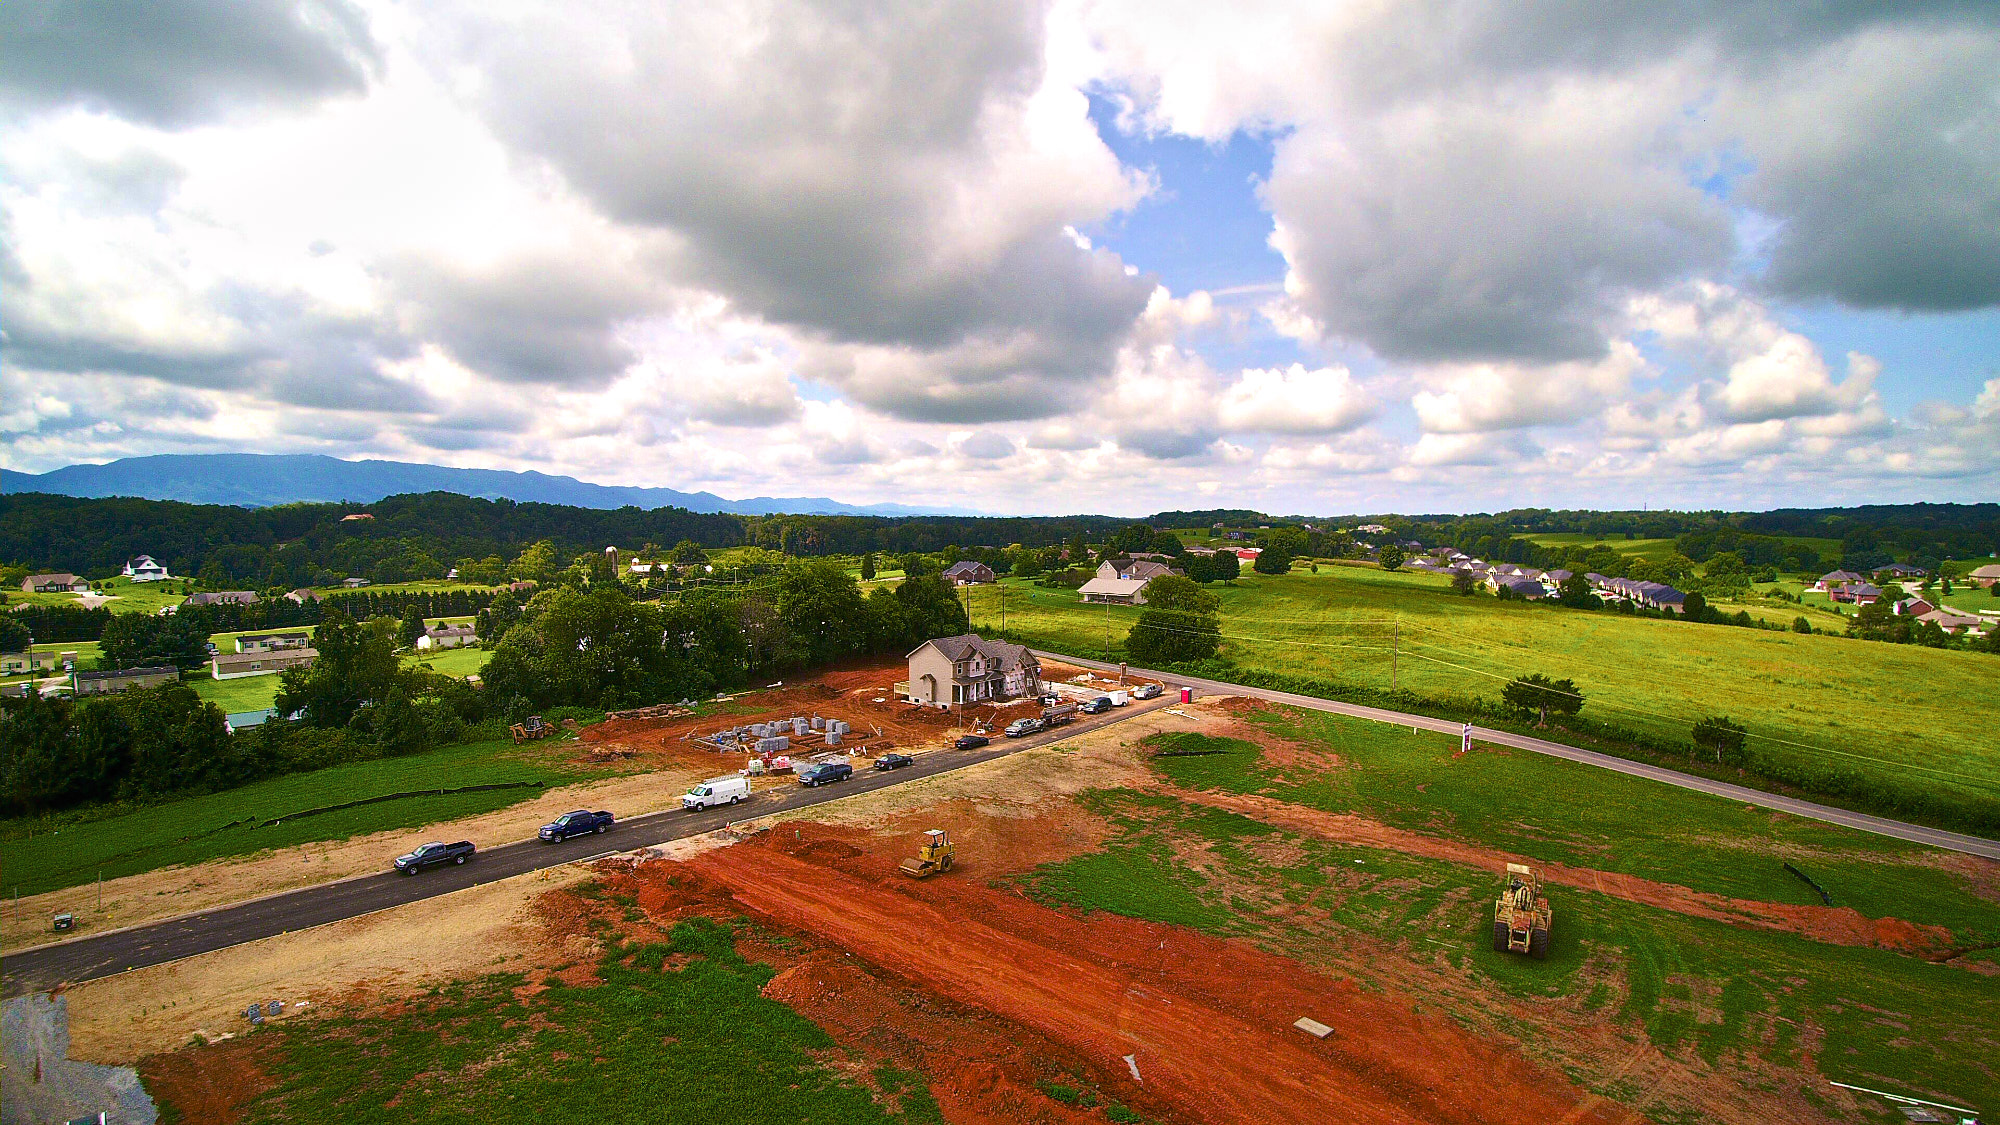 drone photography professional photographer inKnoxville, TN